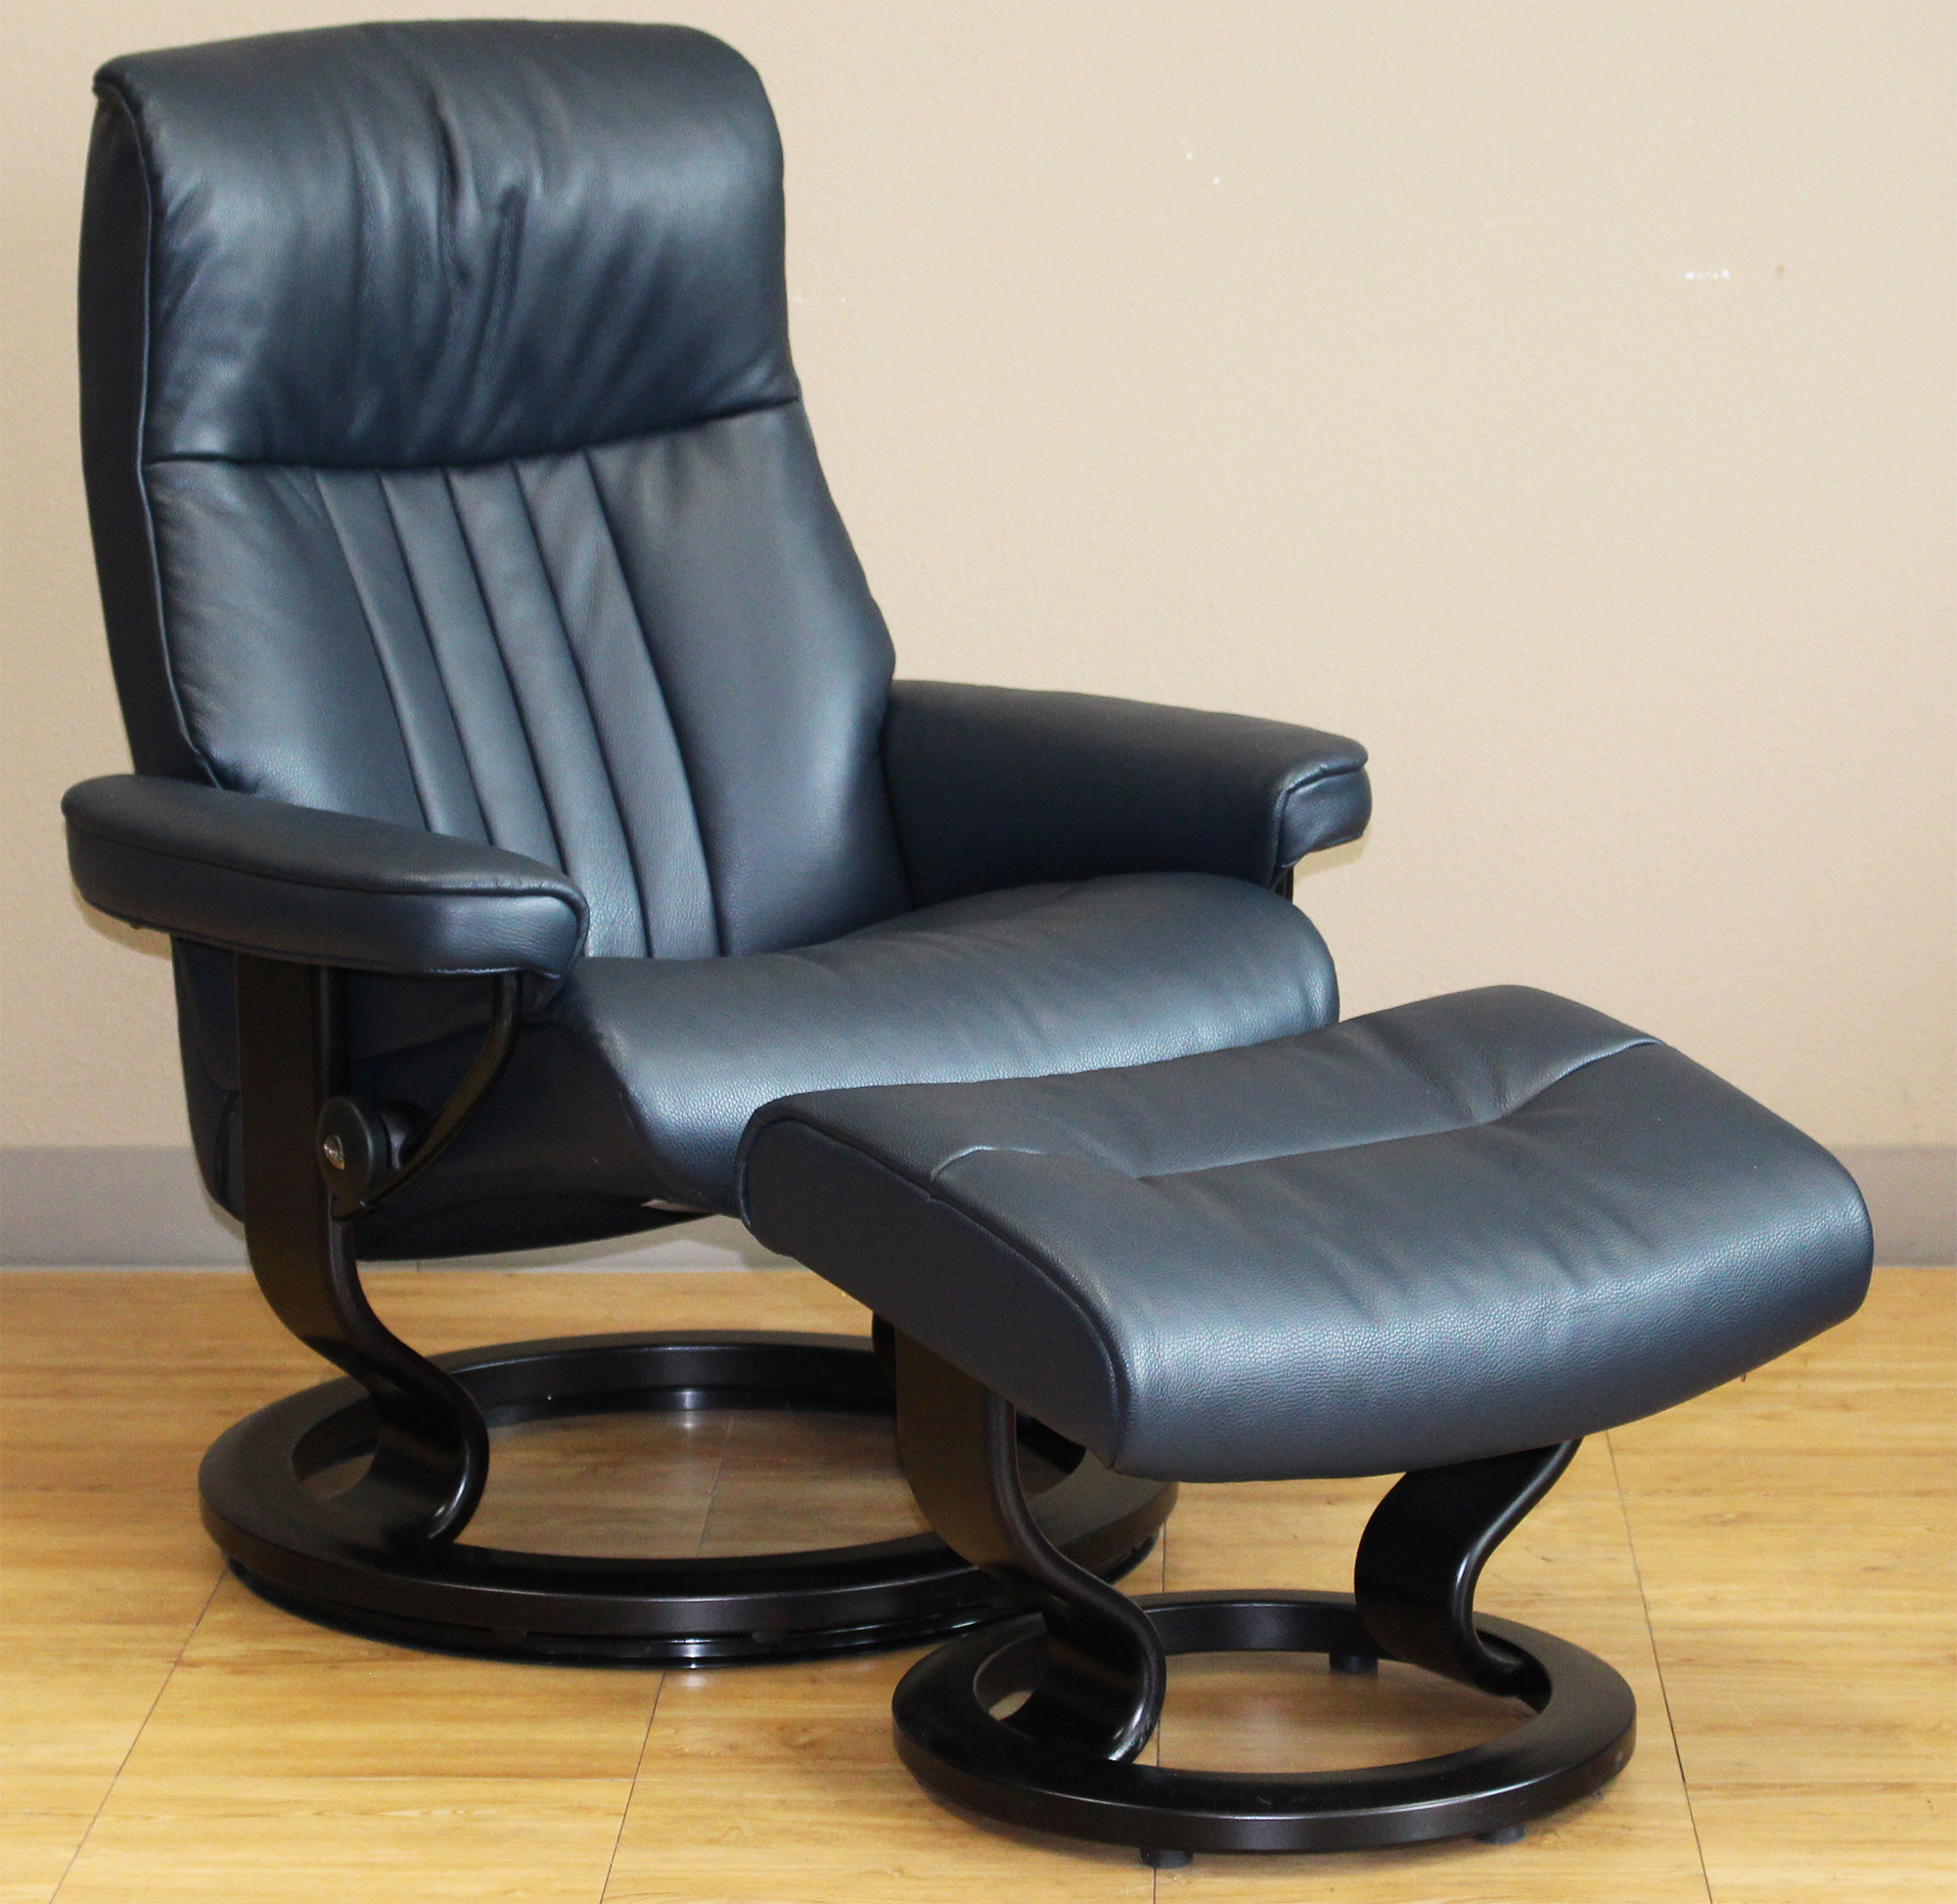 Stressless crown cori blue leather recliner chair for Chair chair chair